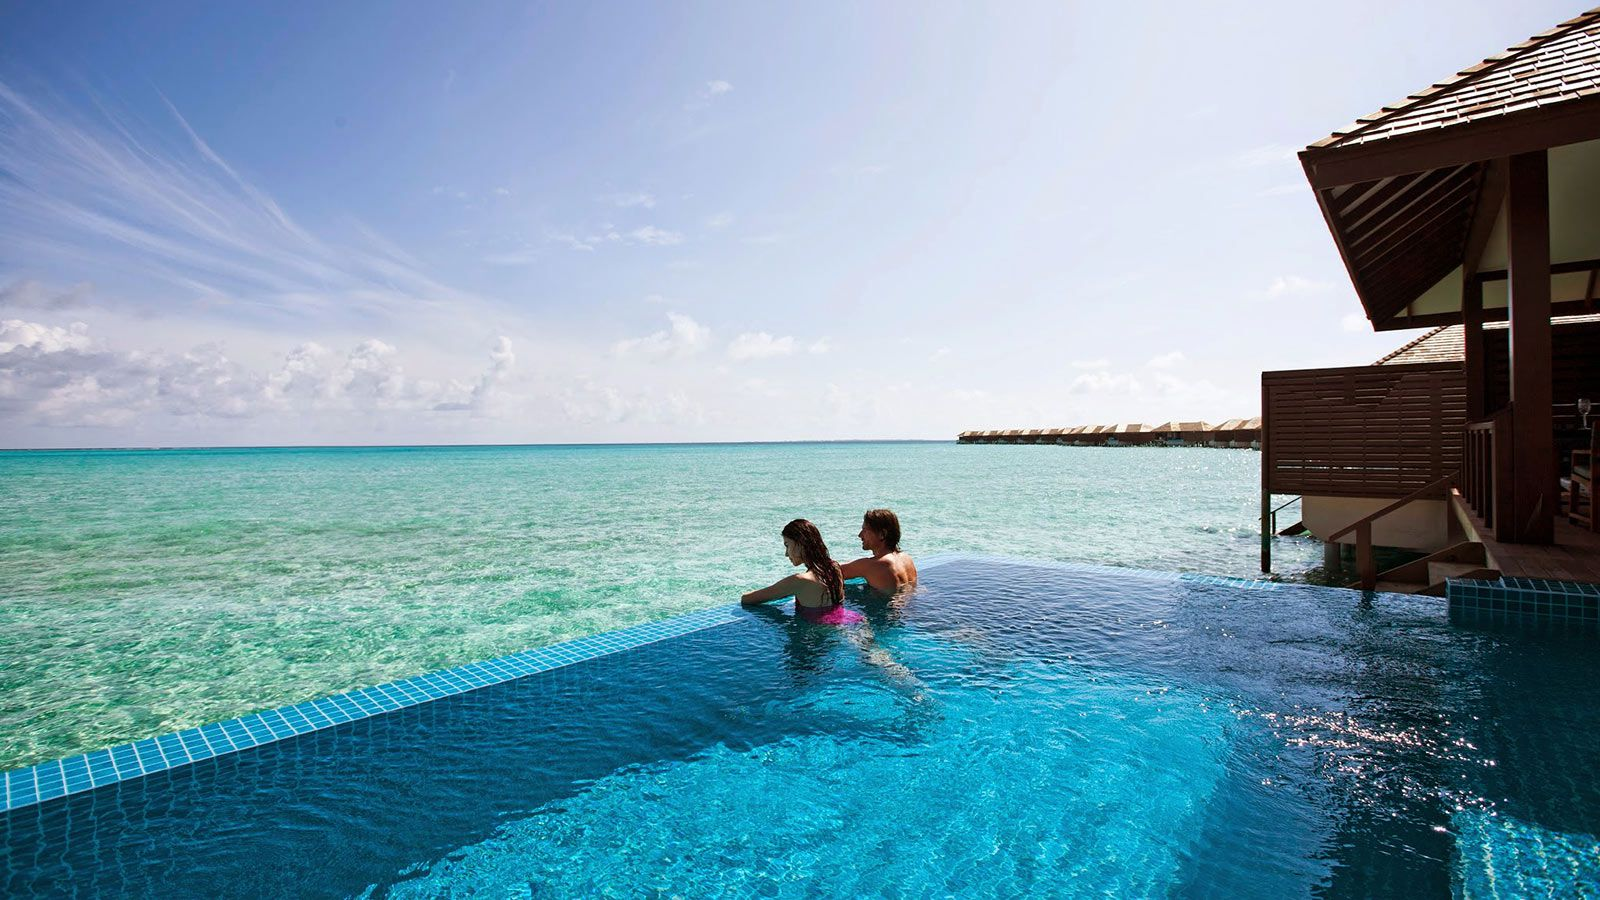 Top 5 Reasons To Honeymoon In Maldives